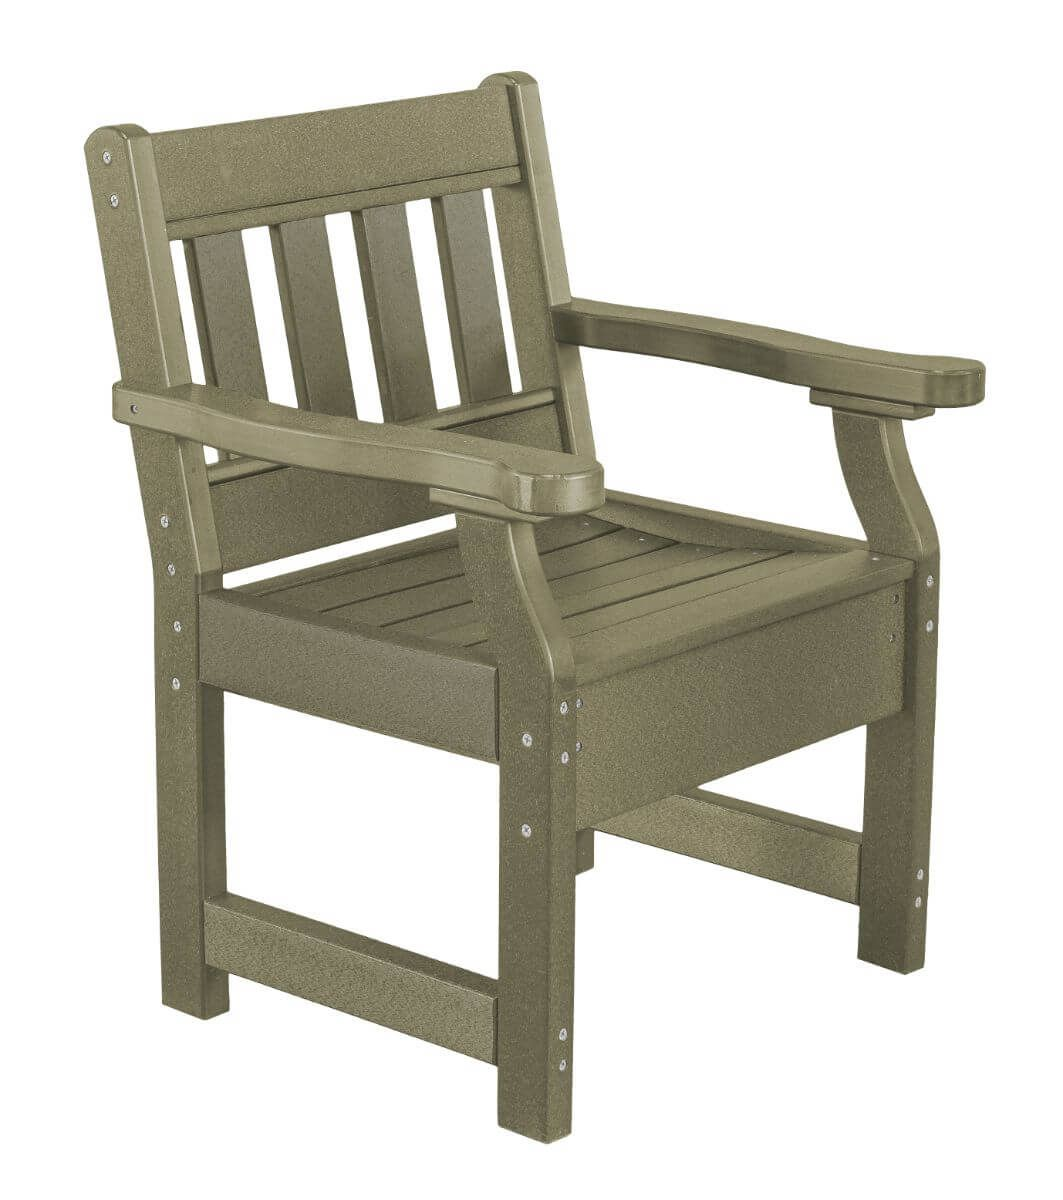 Olive Aden Patio Chair